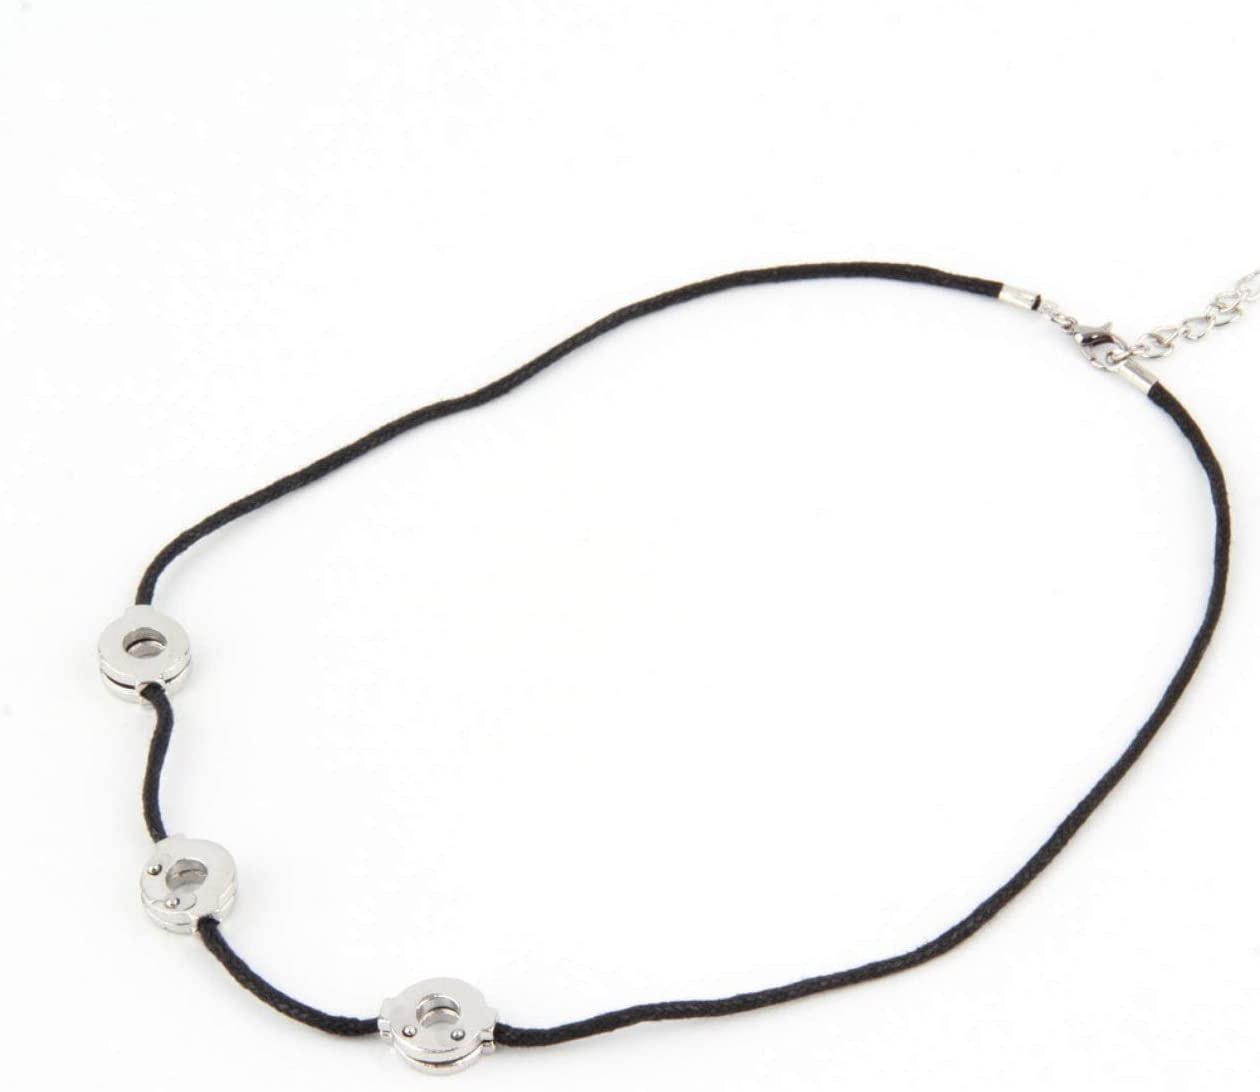 1pcs Women Necklace Chain Titanium Steel Itachi Cosplay 3 Loops Pendant Necklace Party Wedding Accessories Female Jewelry